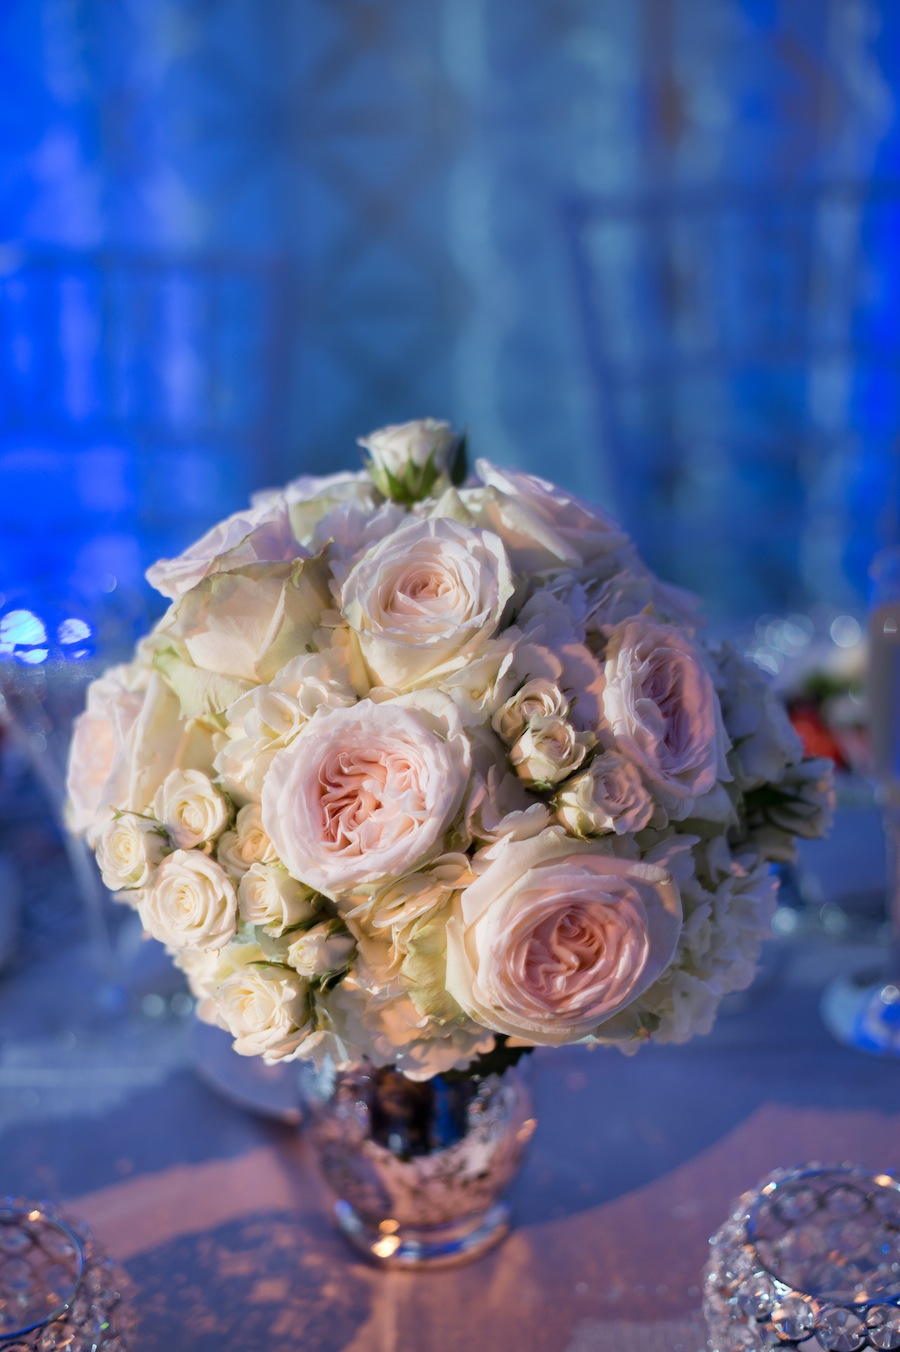 Pink and White Rose Wedding Centerpieces by Apple Blossoms Floral Design